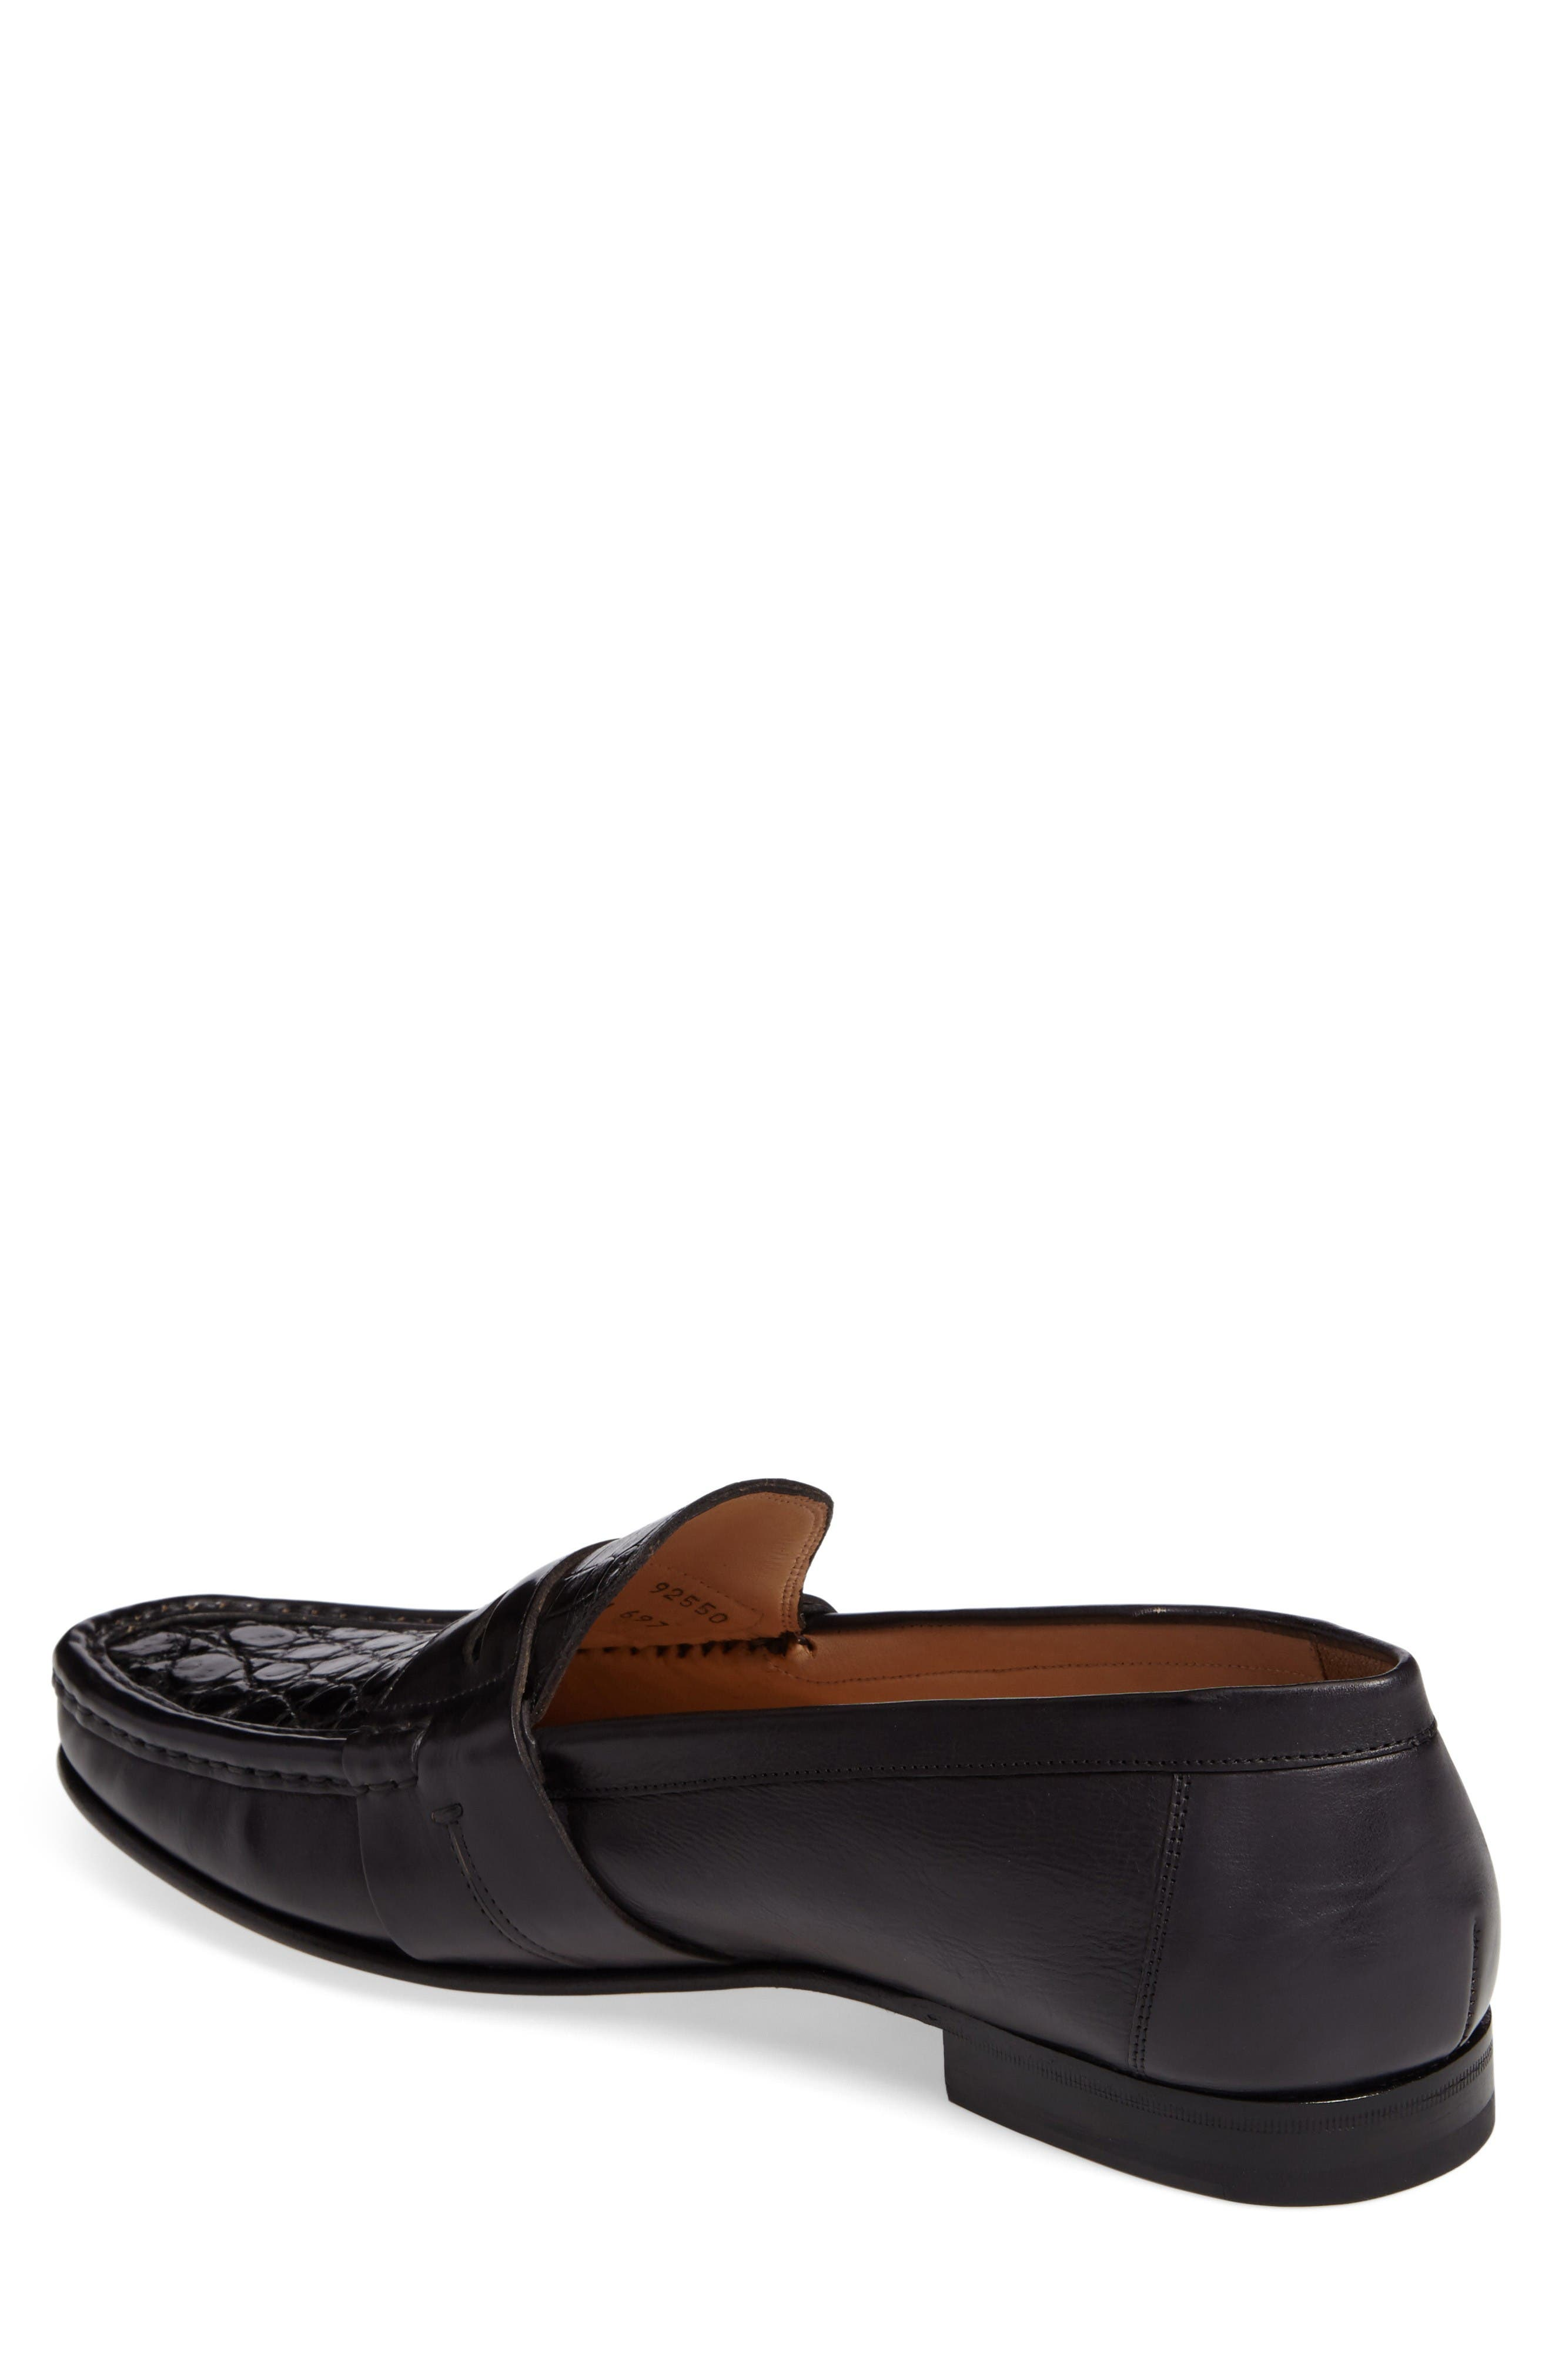 Marconi Penny Loafer,                             Alternate thumbnail 2, color,                             Black Leather